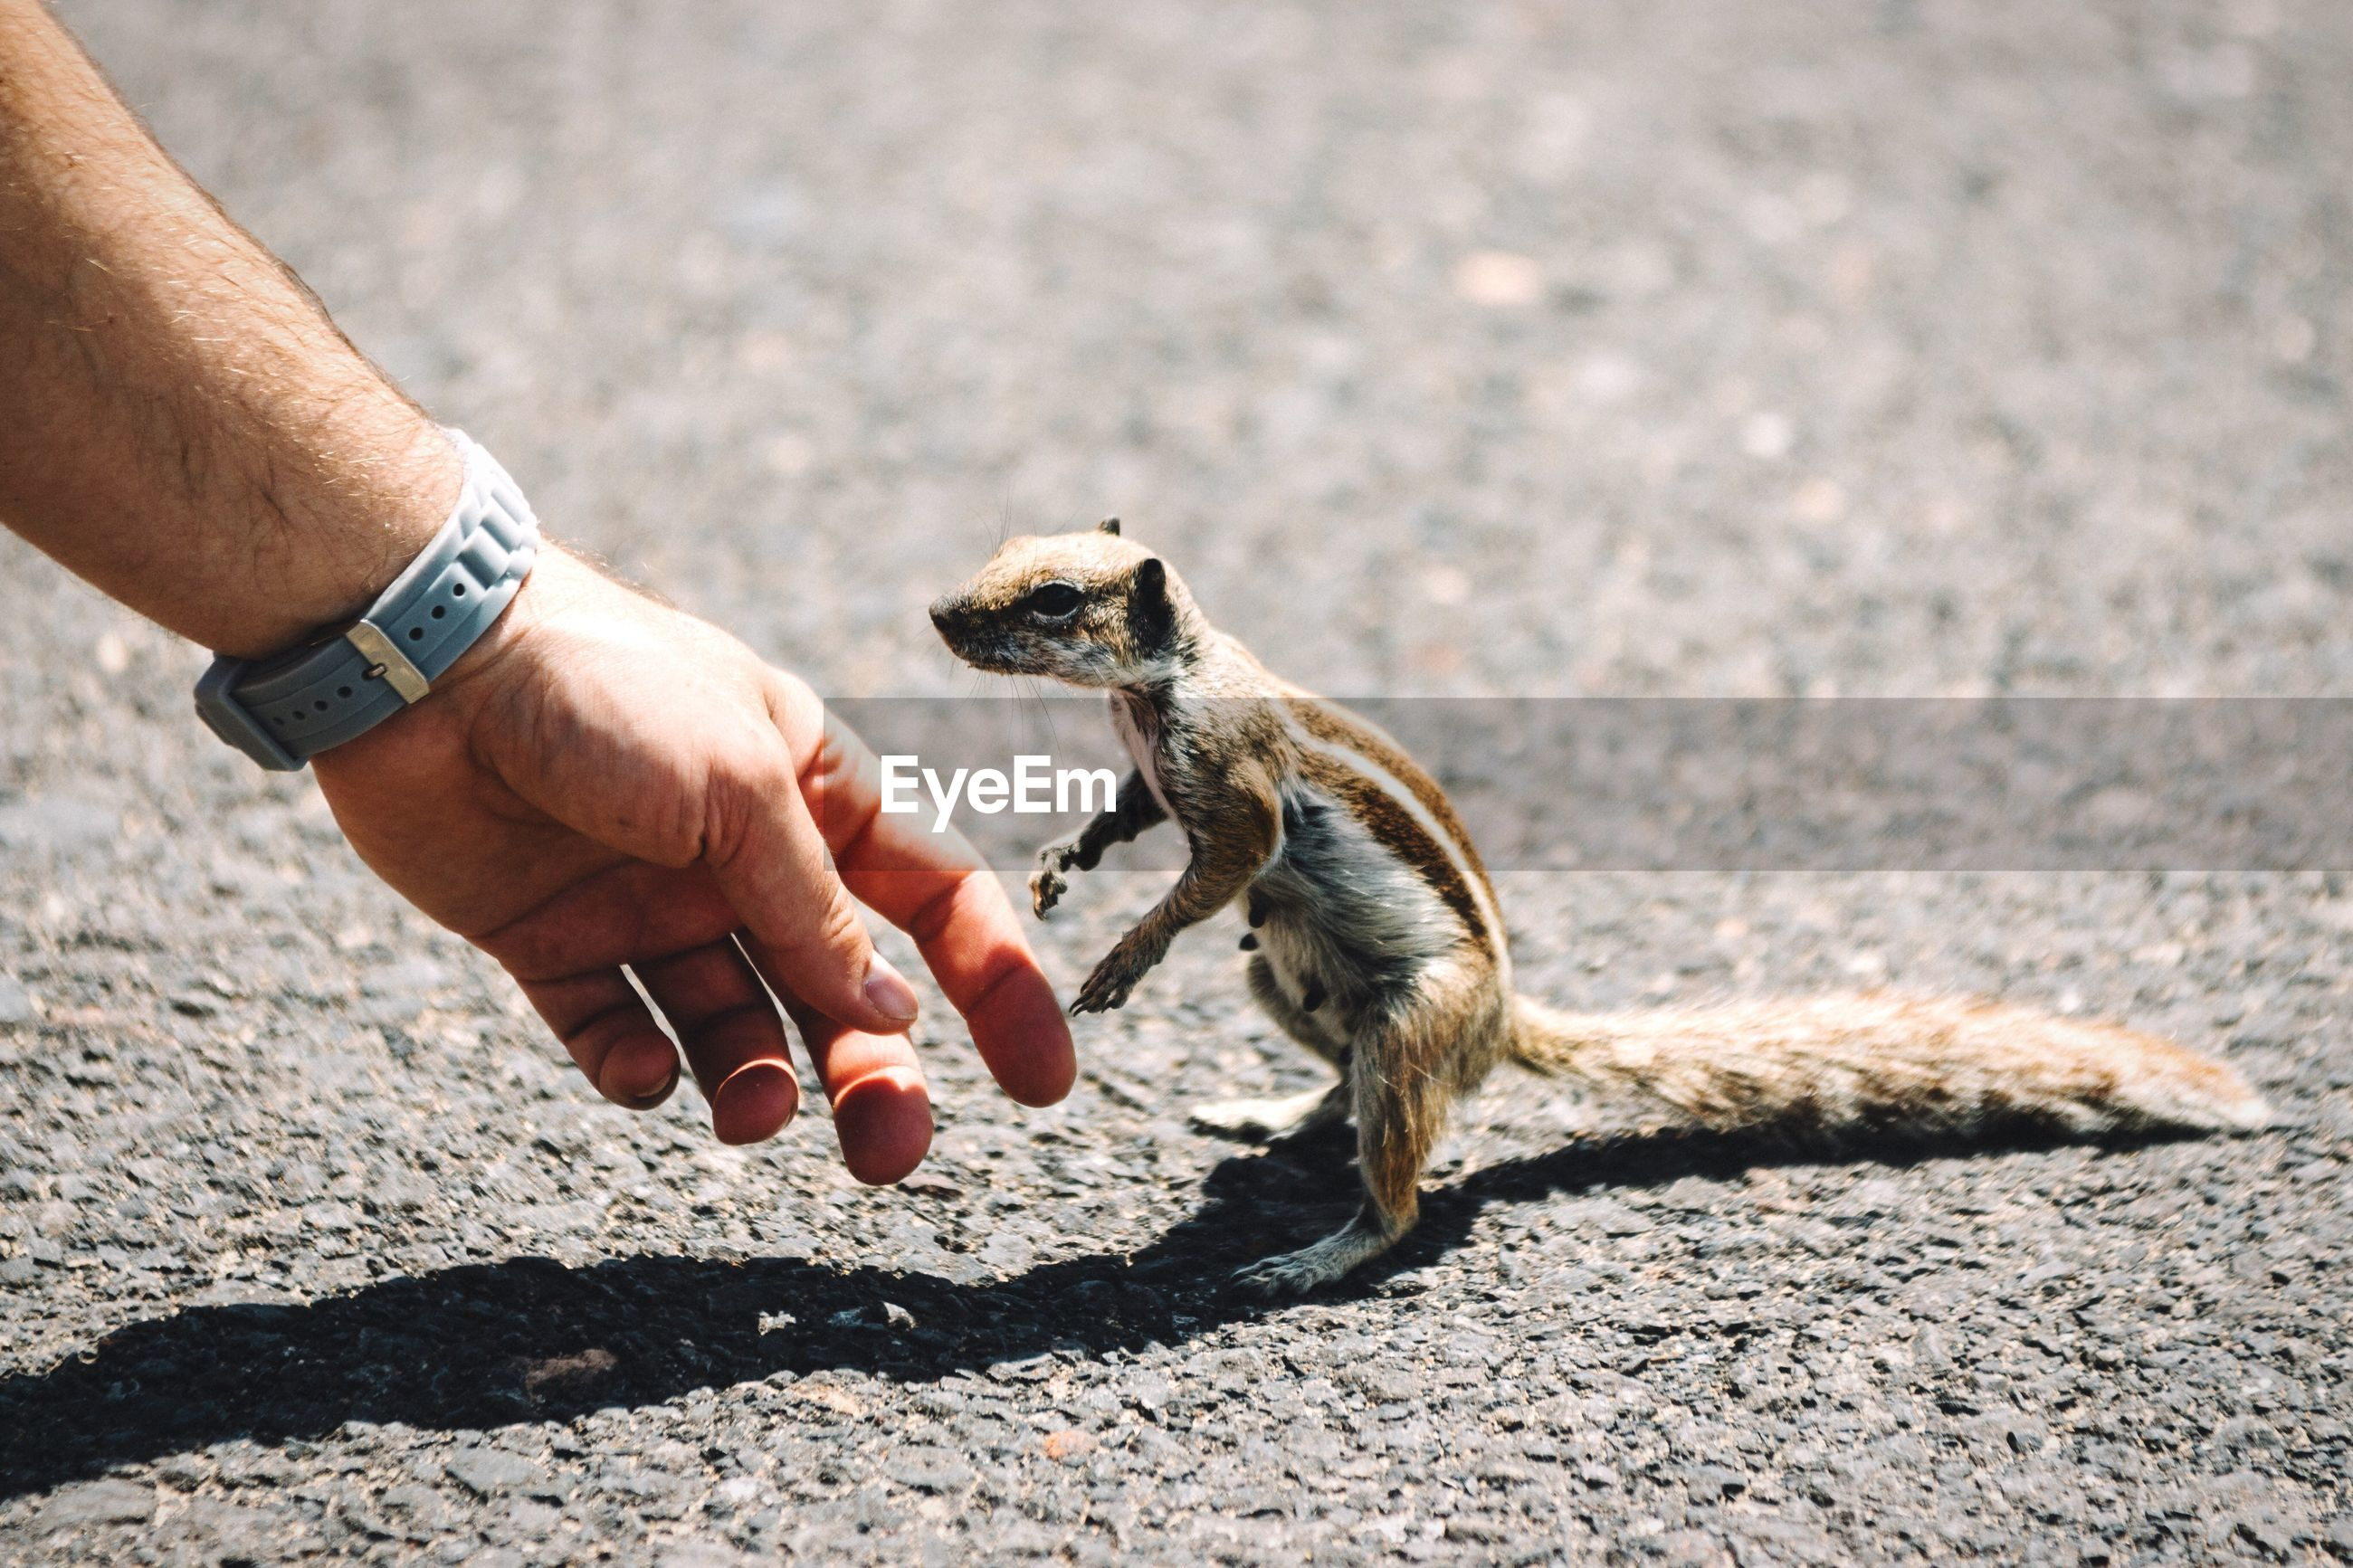 Cropped hand by squirrel on road during sunny day